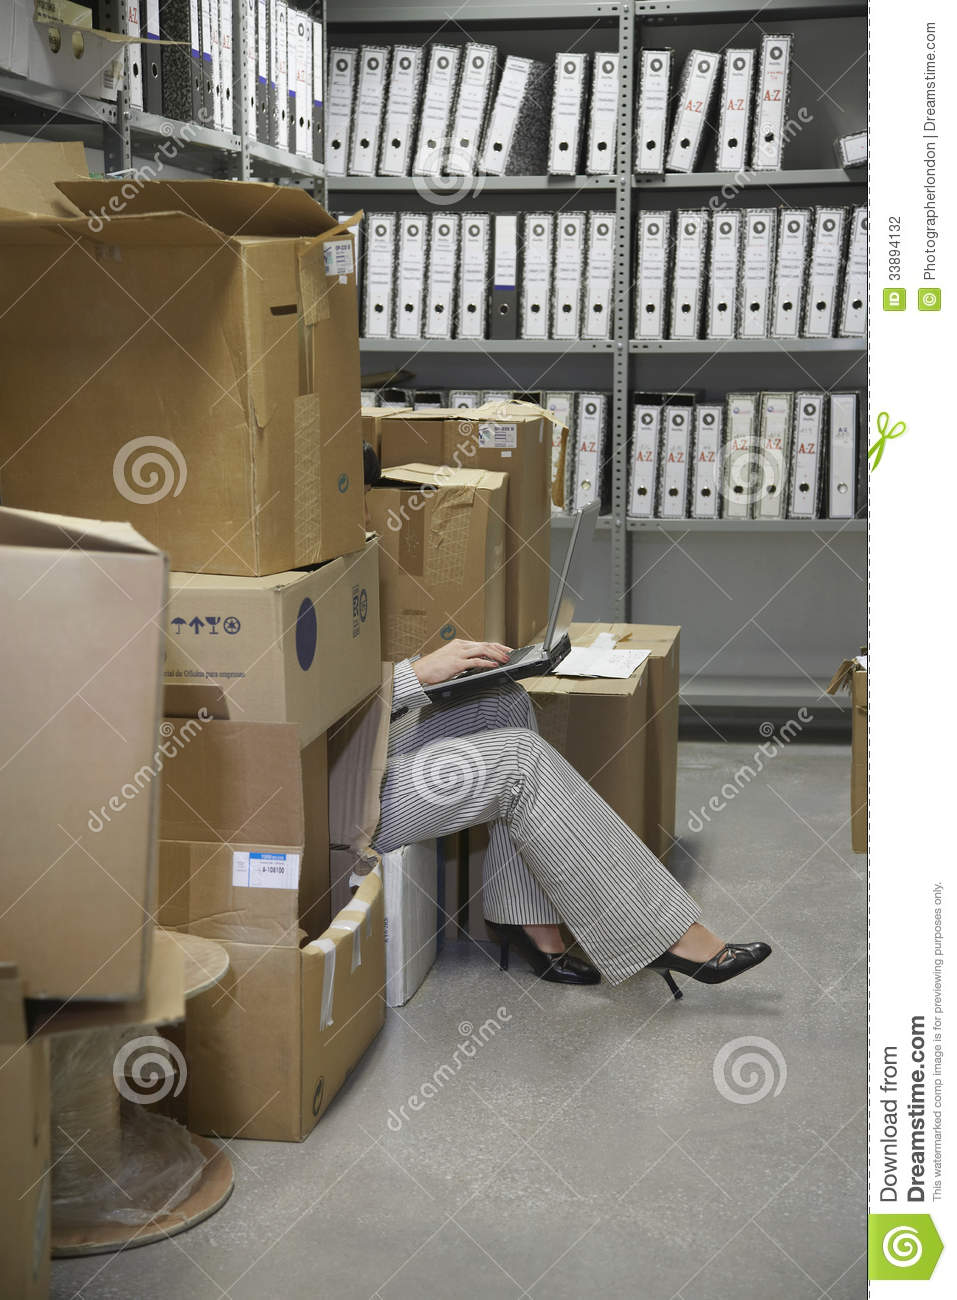 office storage room material storage woman using laptop in office storage room stock photo image of